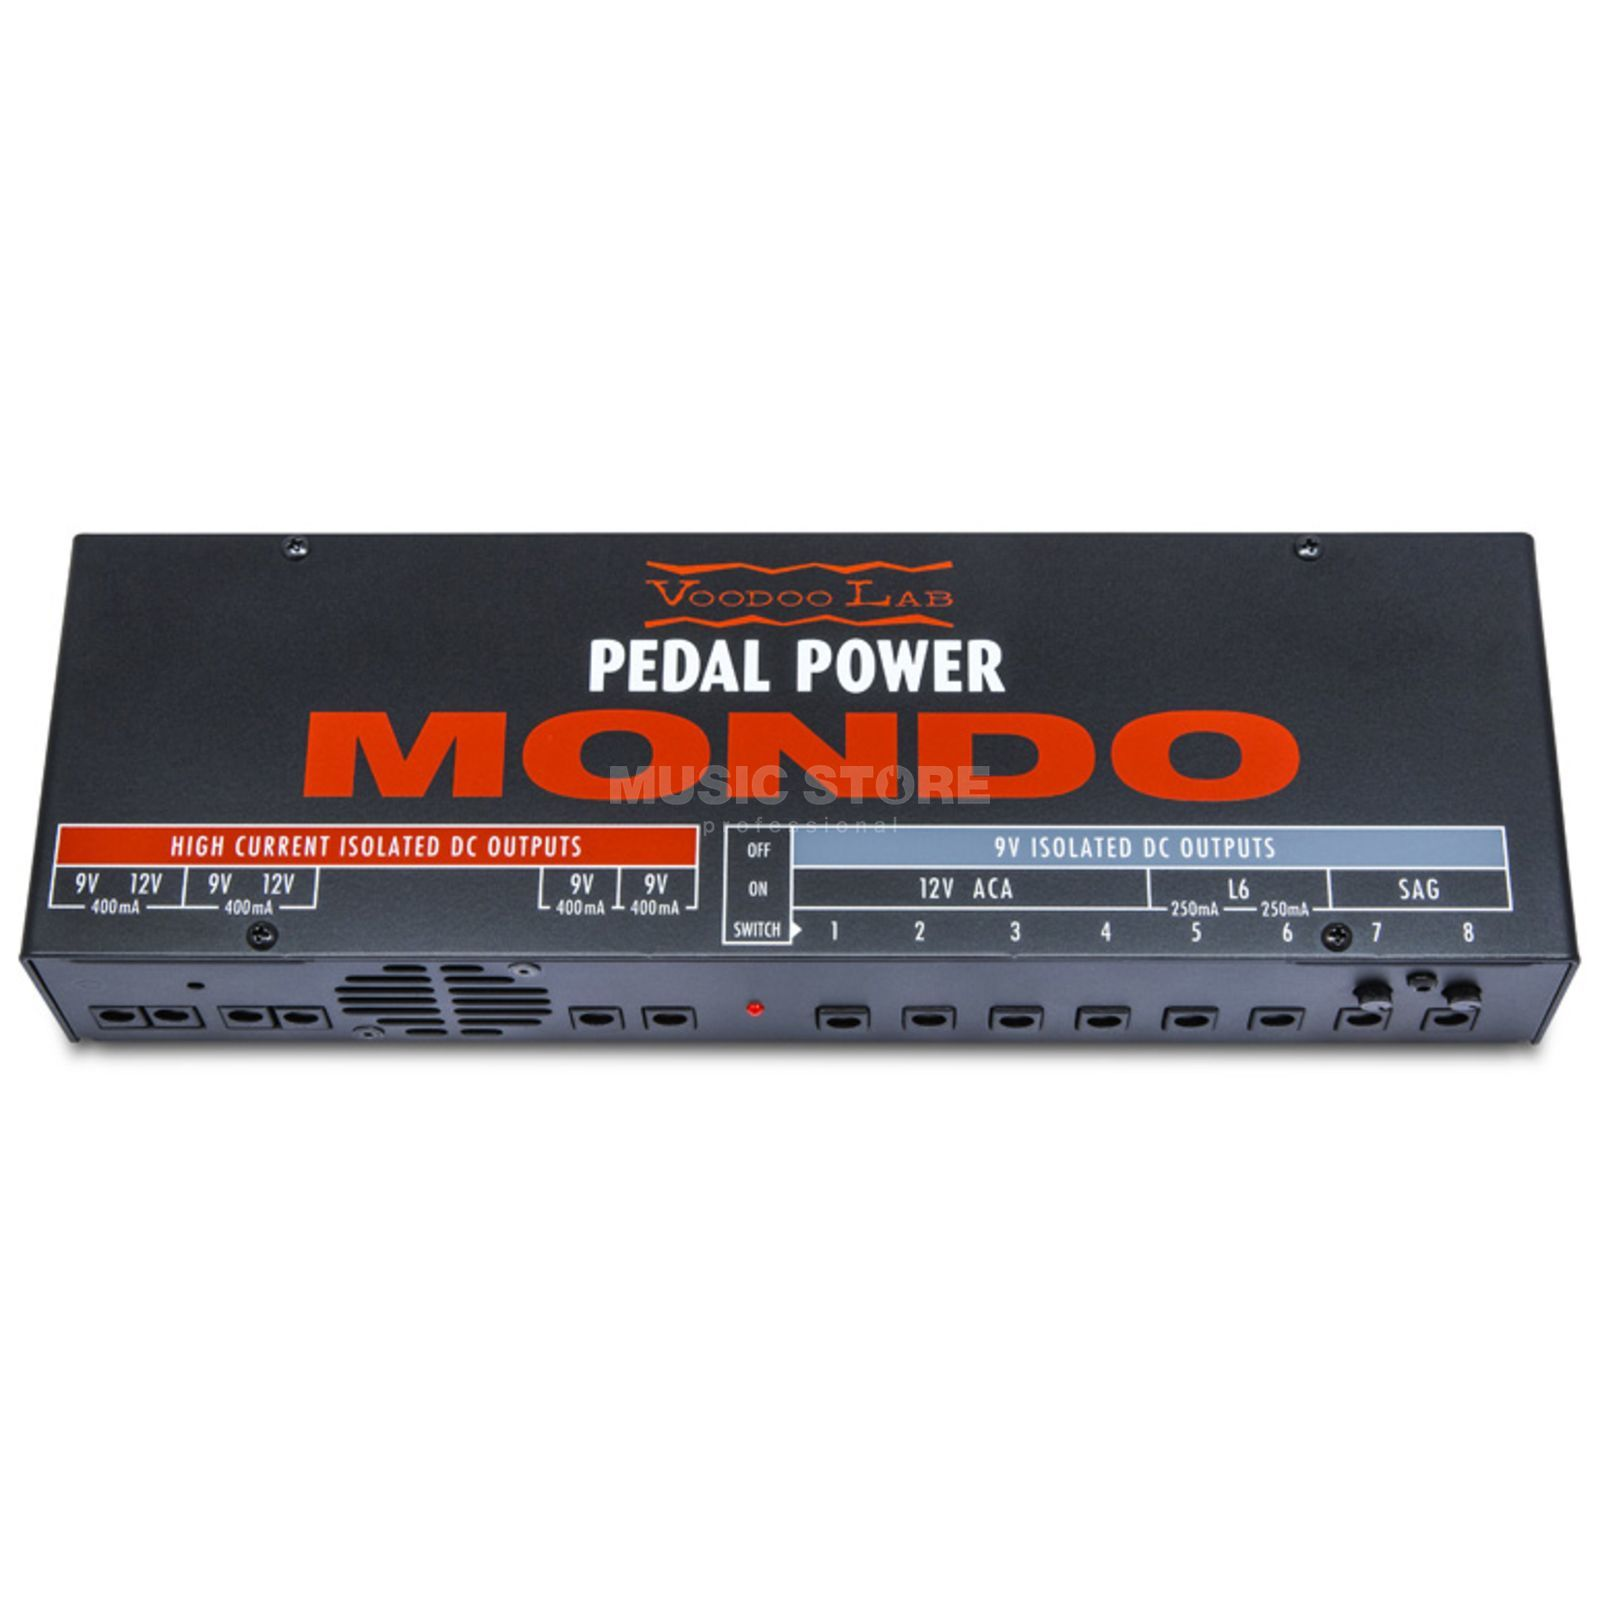 Voodoo-Lab pedaal Power Mondo  Productafbeelding